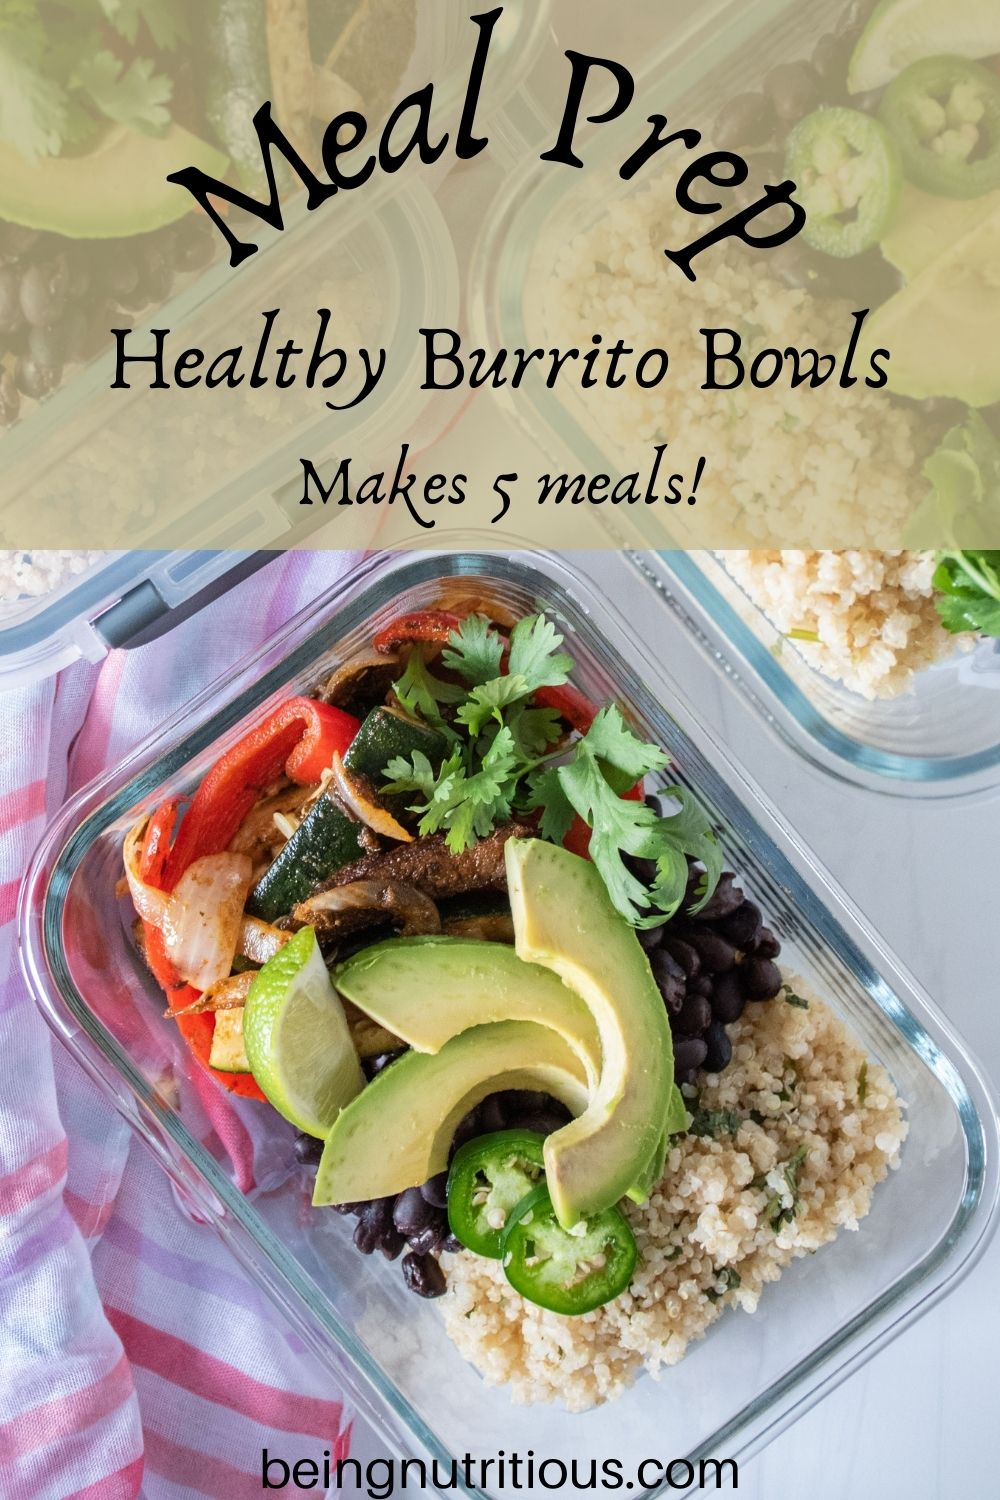 Glass meal prep container filled with burrito fillings. Text overlay: Meal Prep Healthy Burrito Bowls; makes 5 meals!